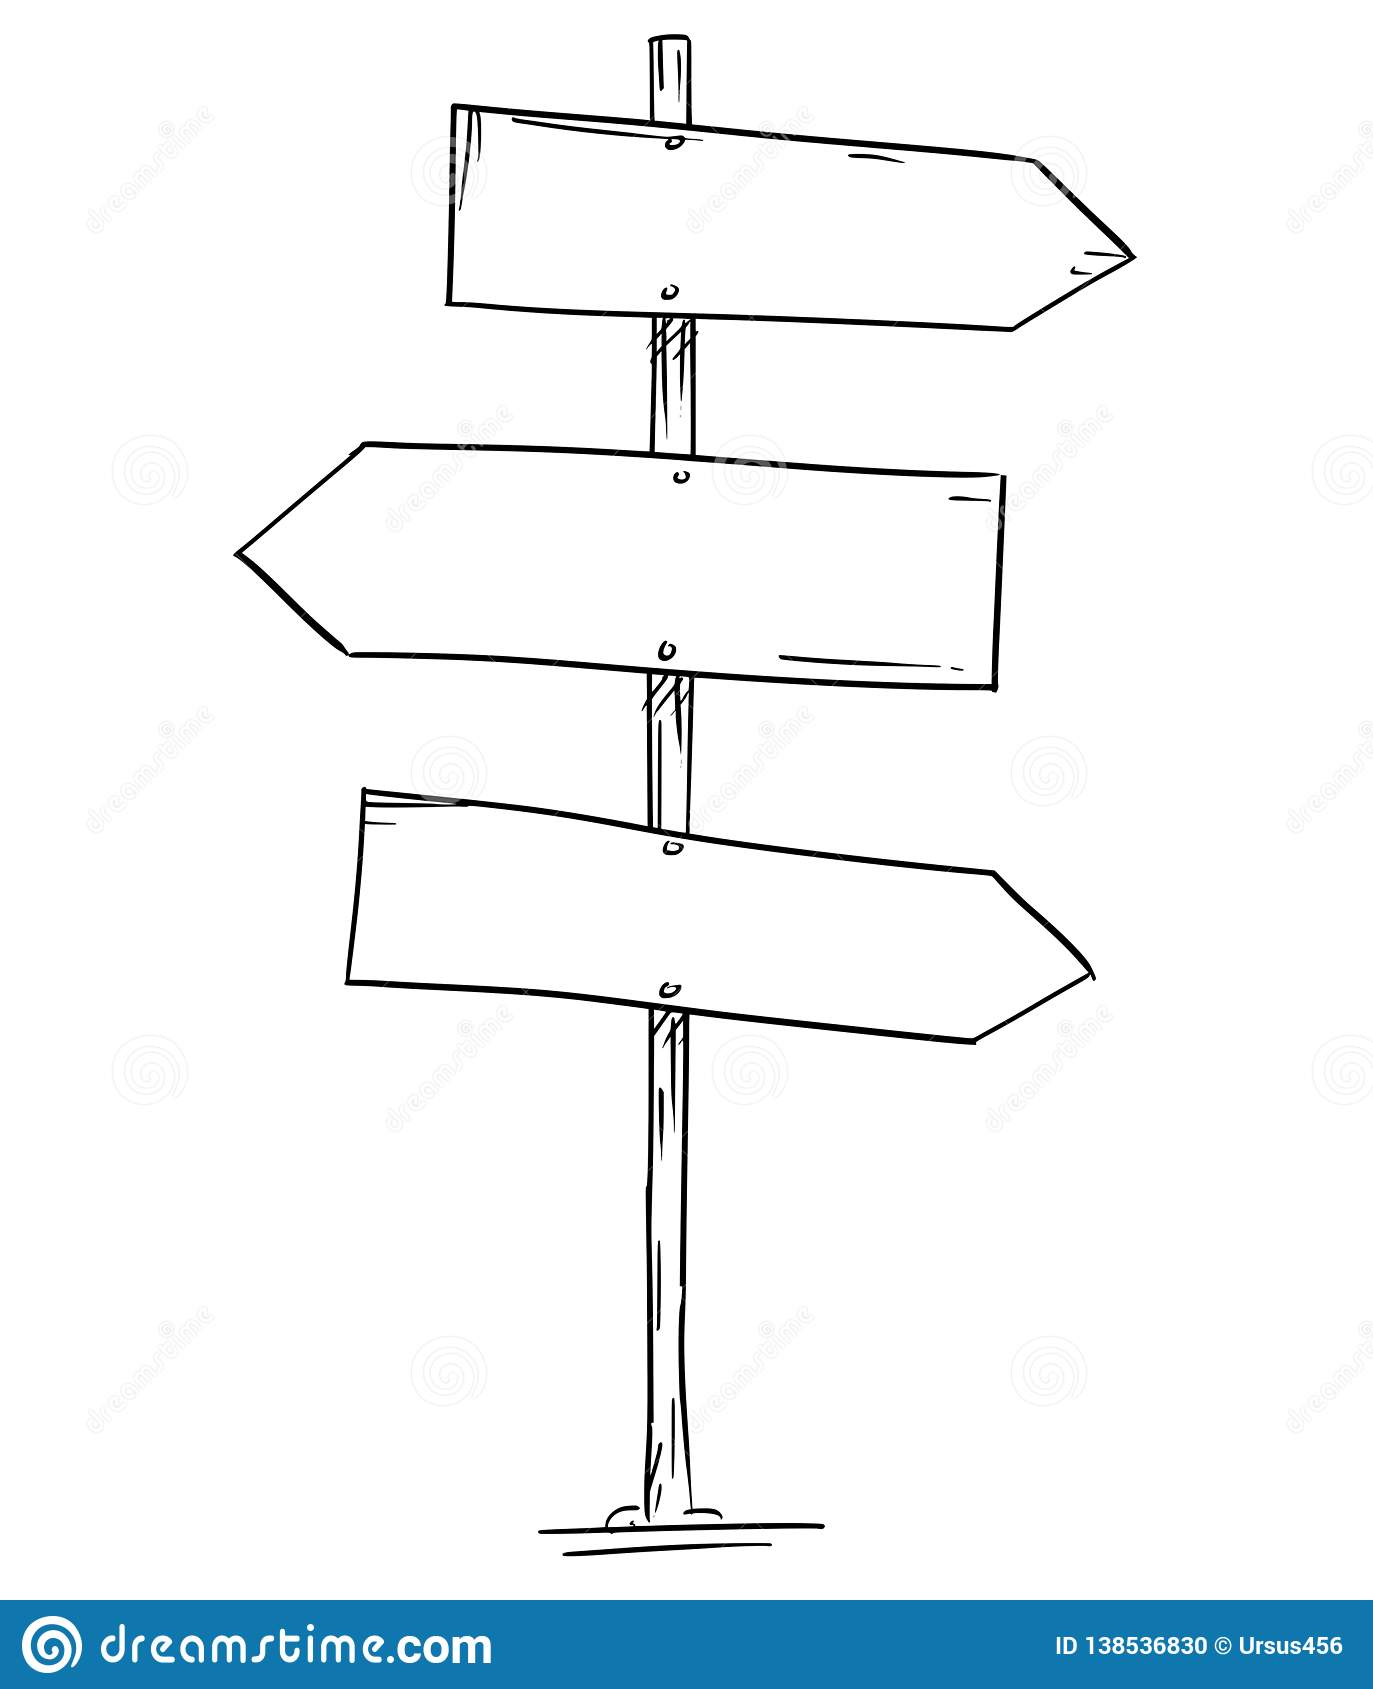 Drawing Of Empty Old Wooden Road Three Directional Arrow